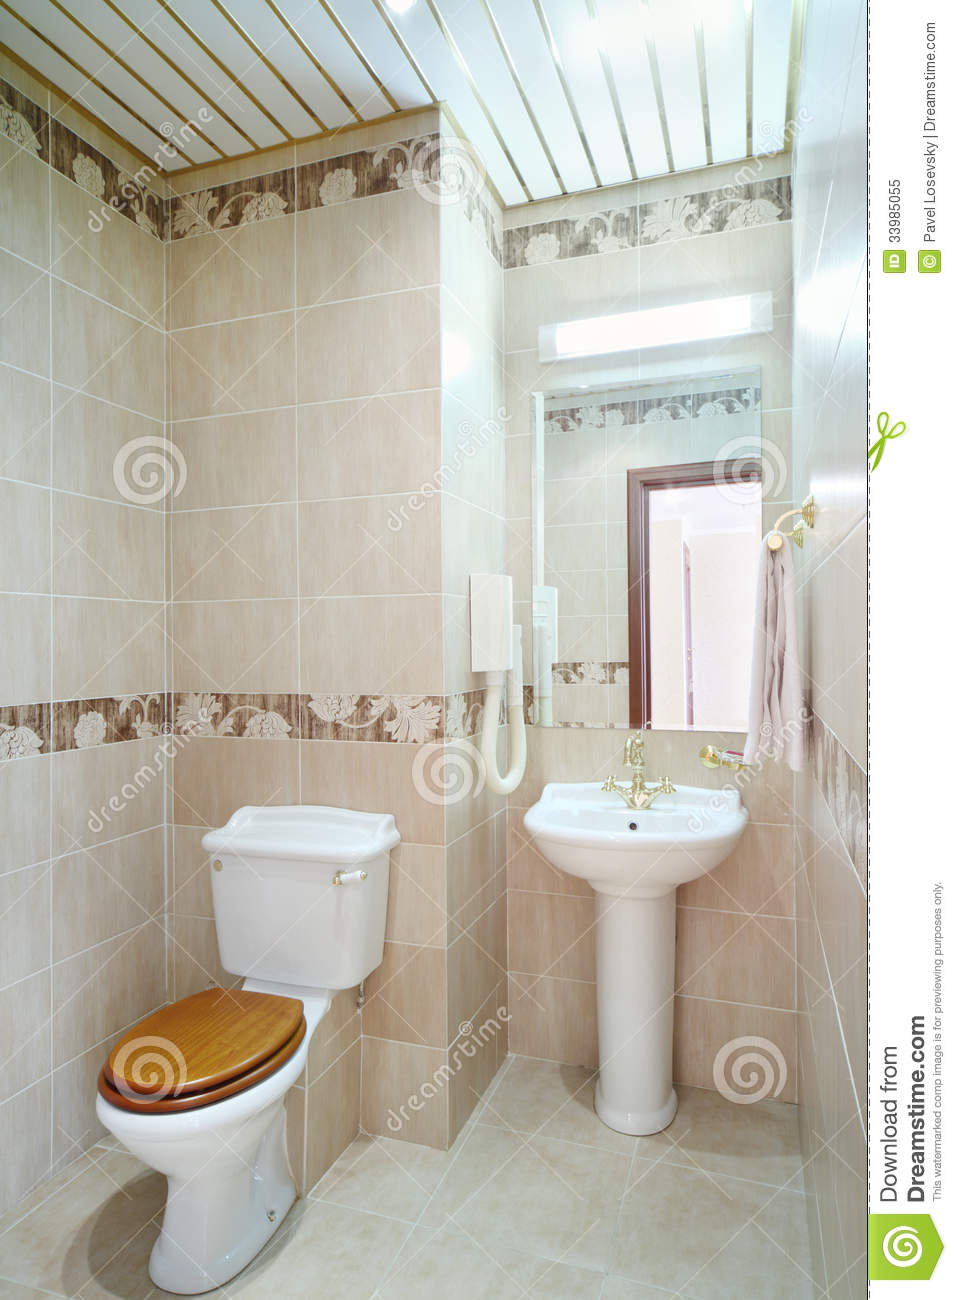 Castorama Salle De Bain Cooke And Lewis ~ Clean Bathroom With Toilet And Washbasin With Mirror Stock Image